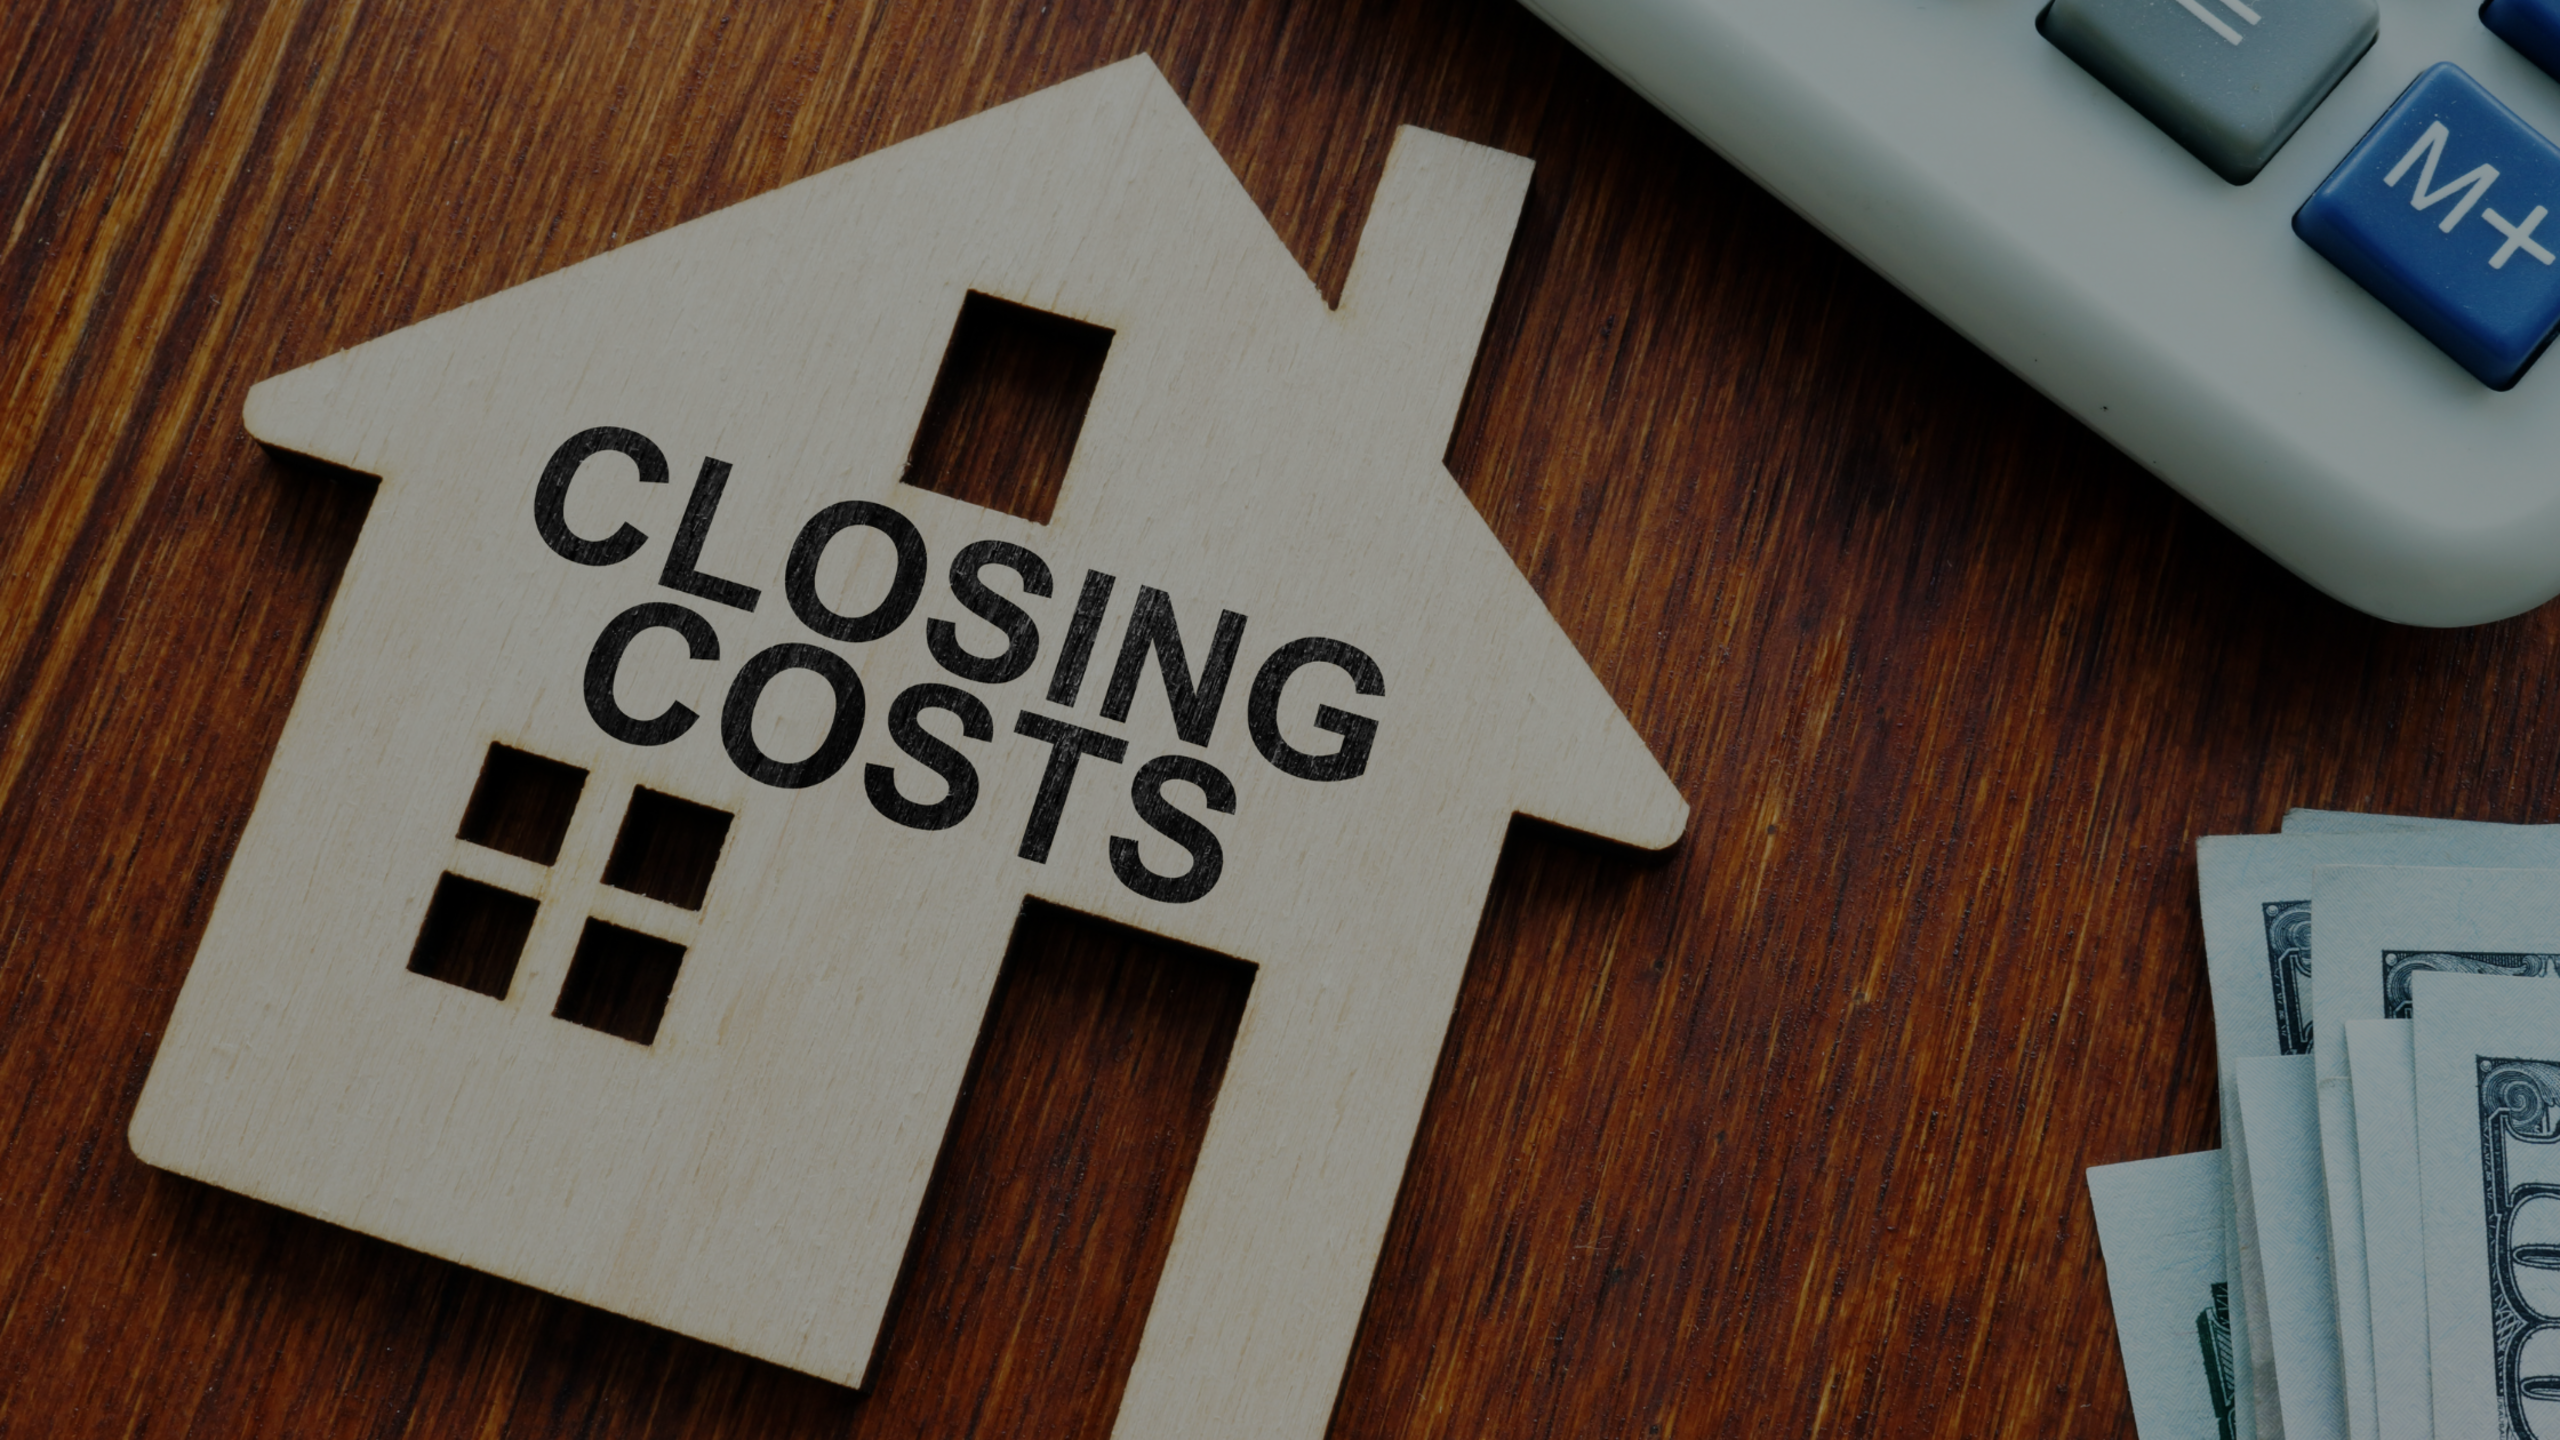 Closing Costs: What Do They Cover?